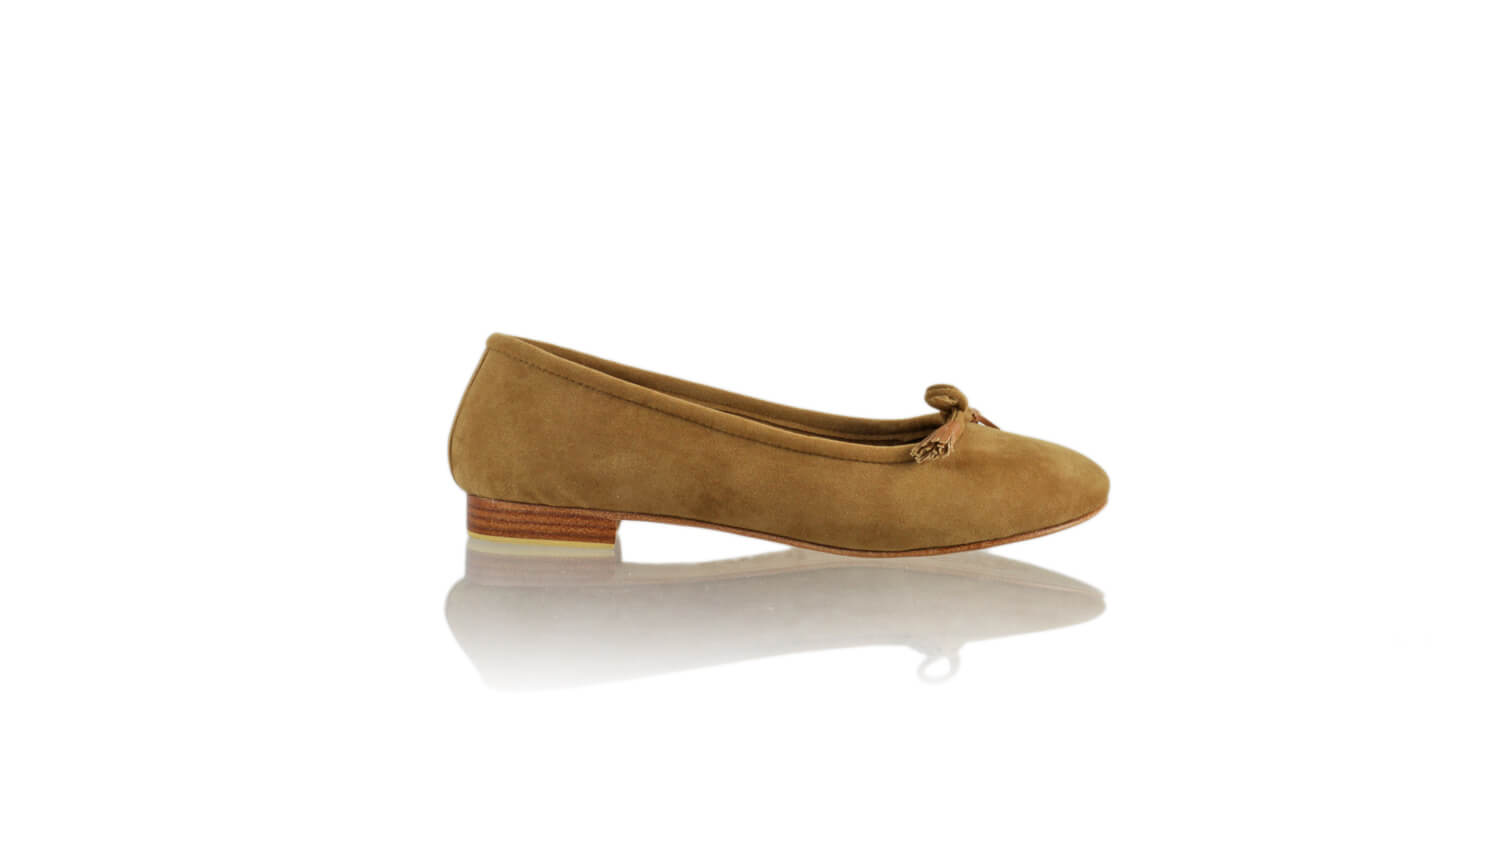 Leather-shoes-Sasha 20mm Ballet - Brown Microsuede-flats ballet-NILUH DJELANTIK-NILUH DJELANTIK